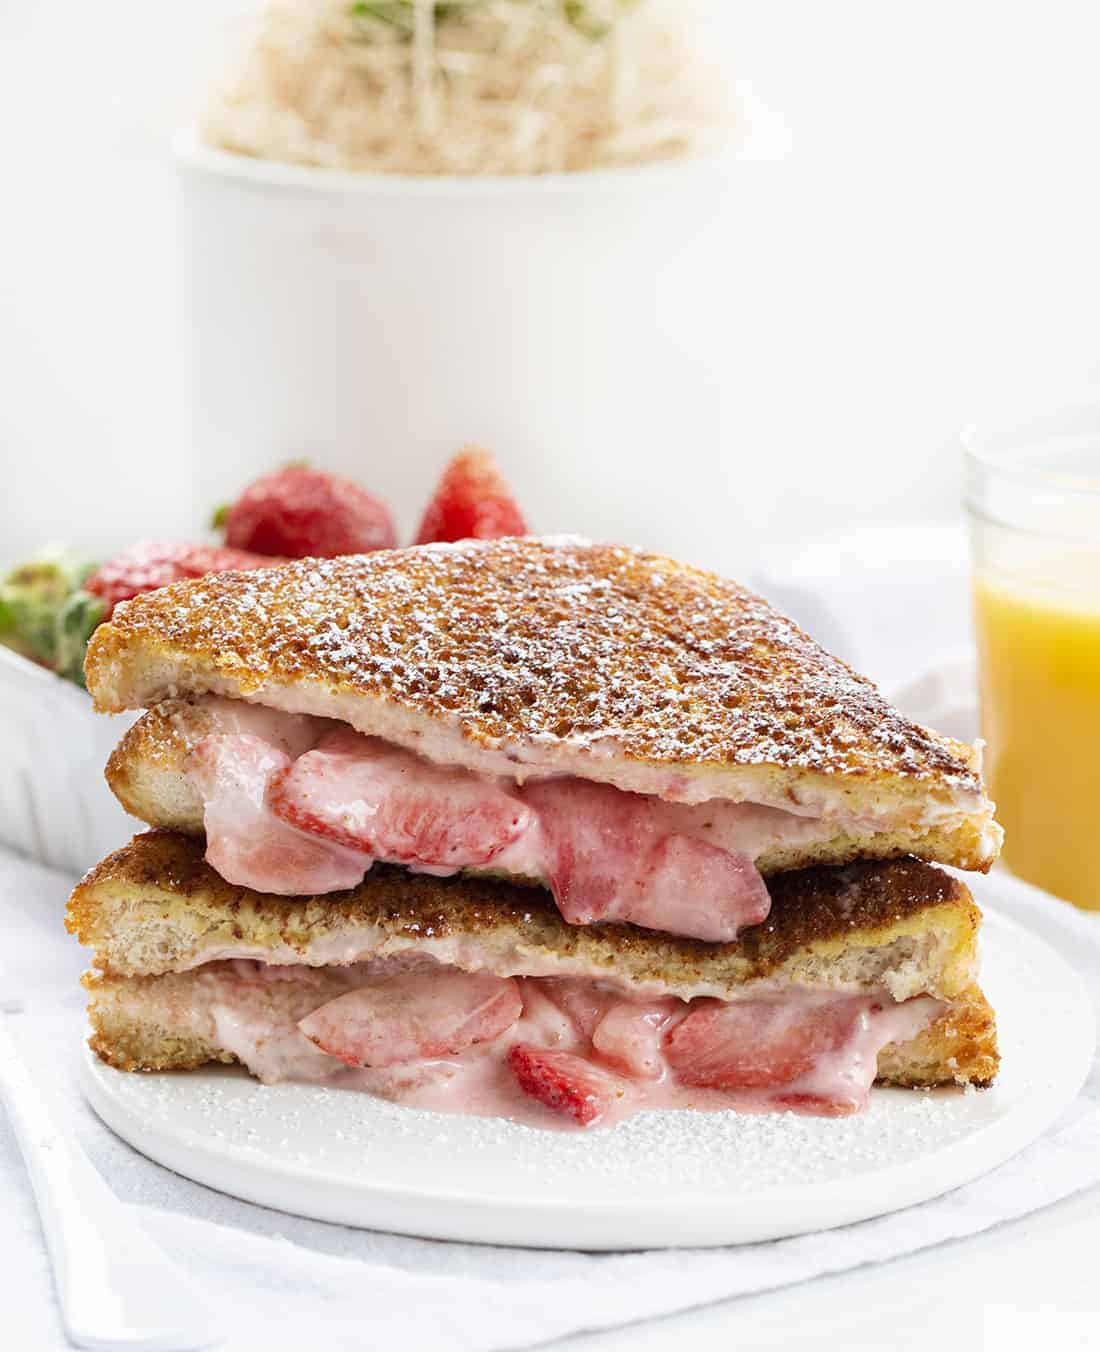 Plate of Stuffed French Toast with Strawberries